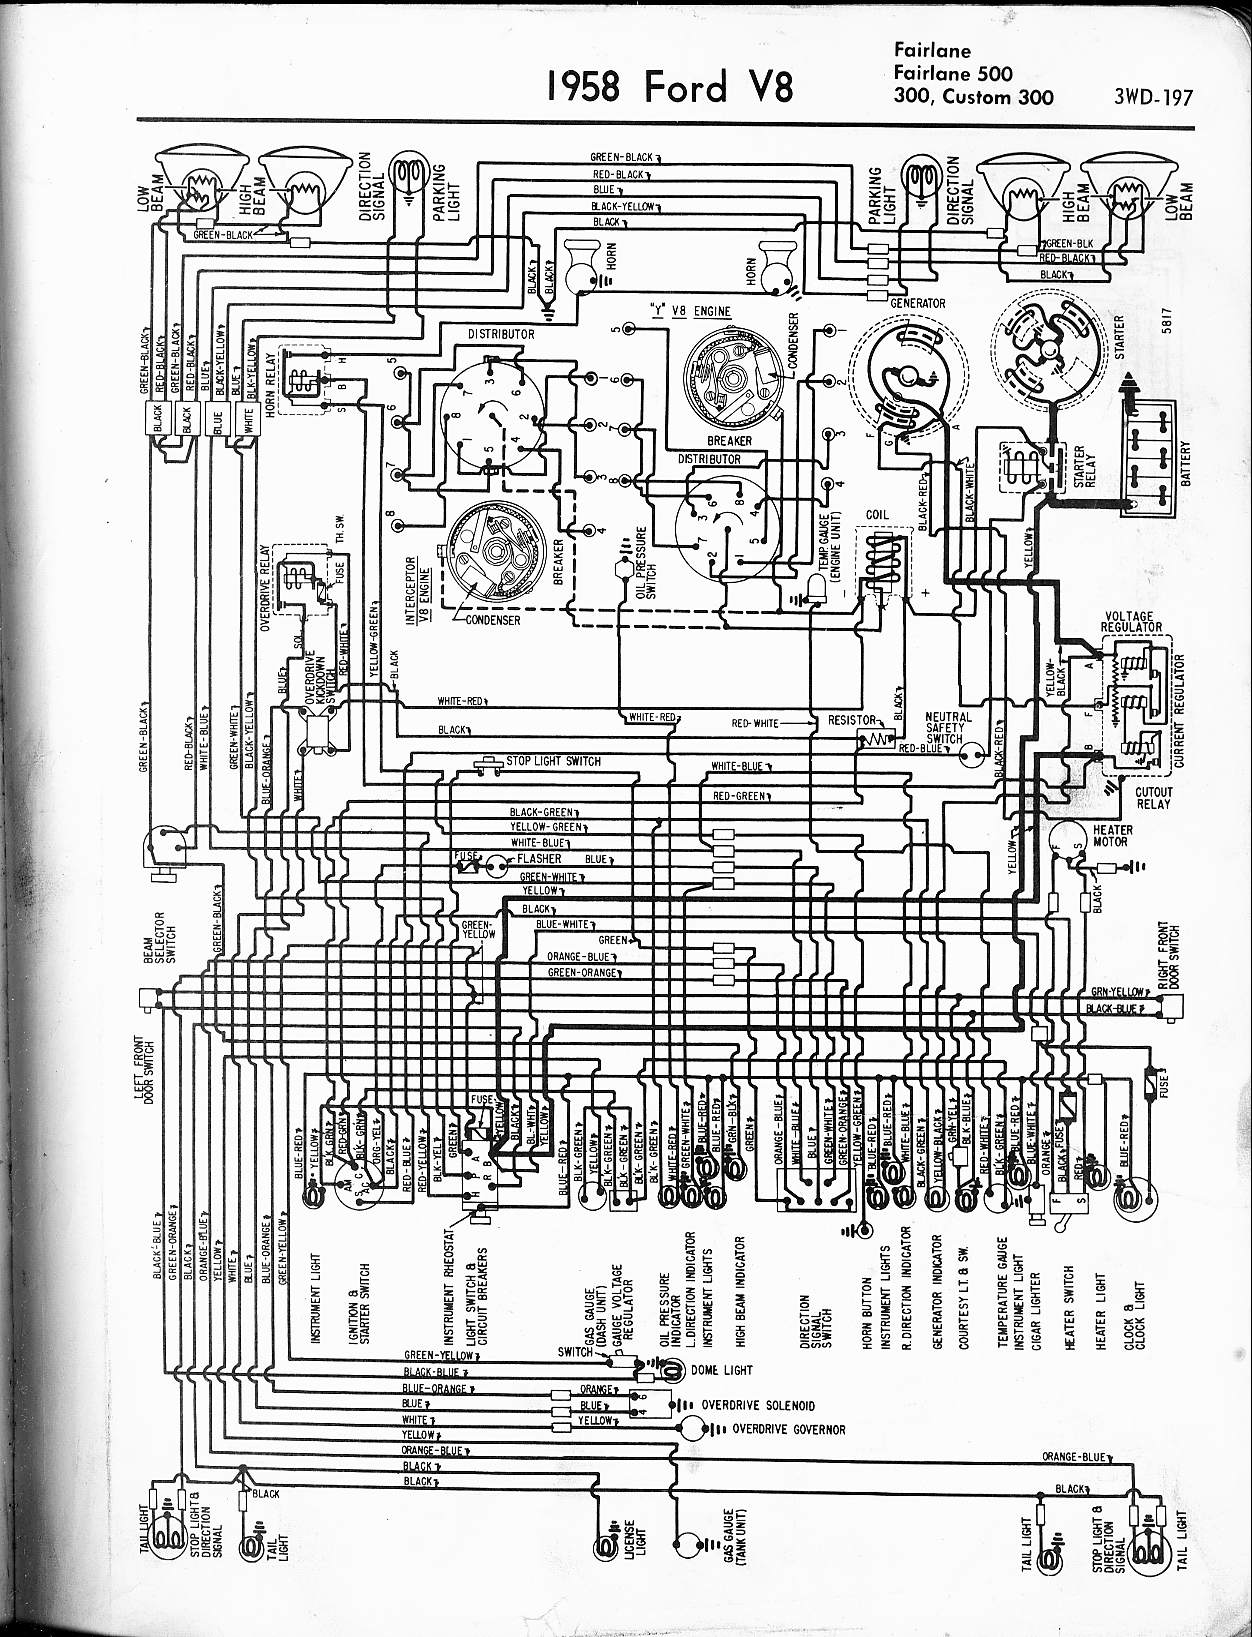 Ford Wiring Manuals - Wiring Library